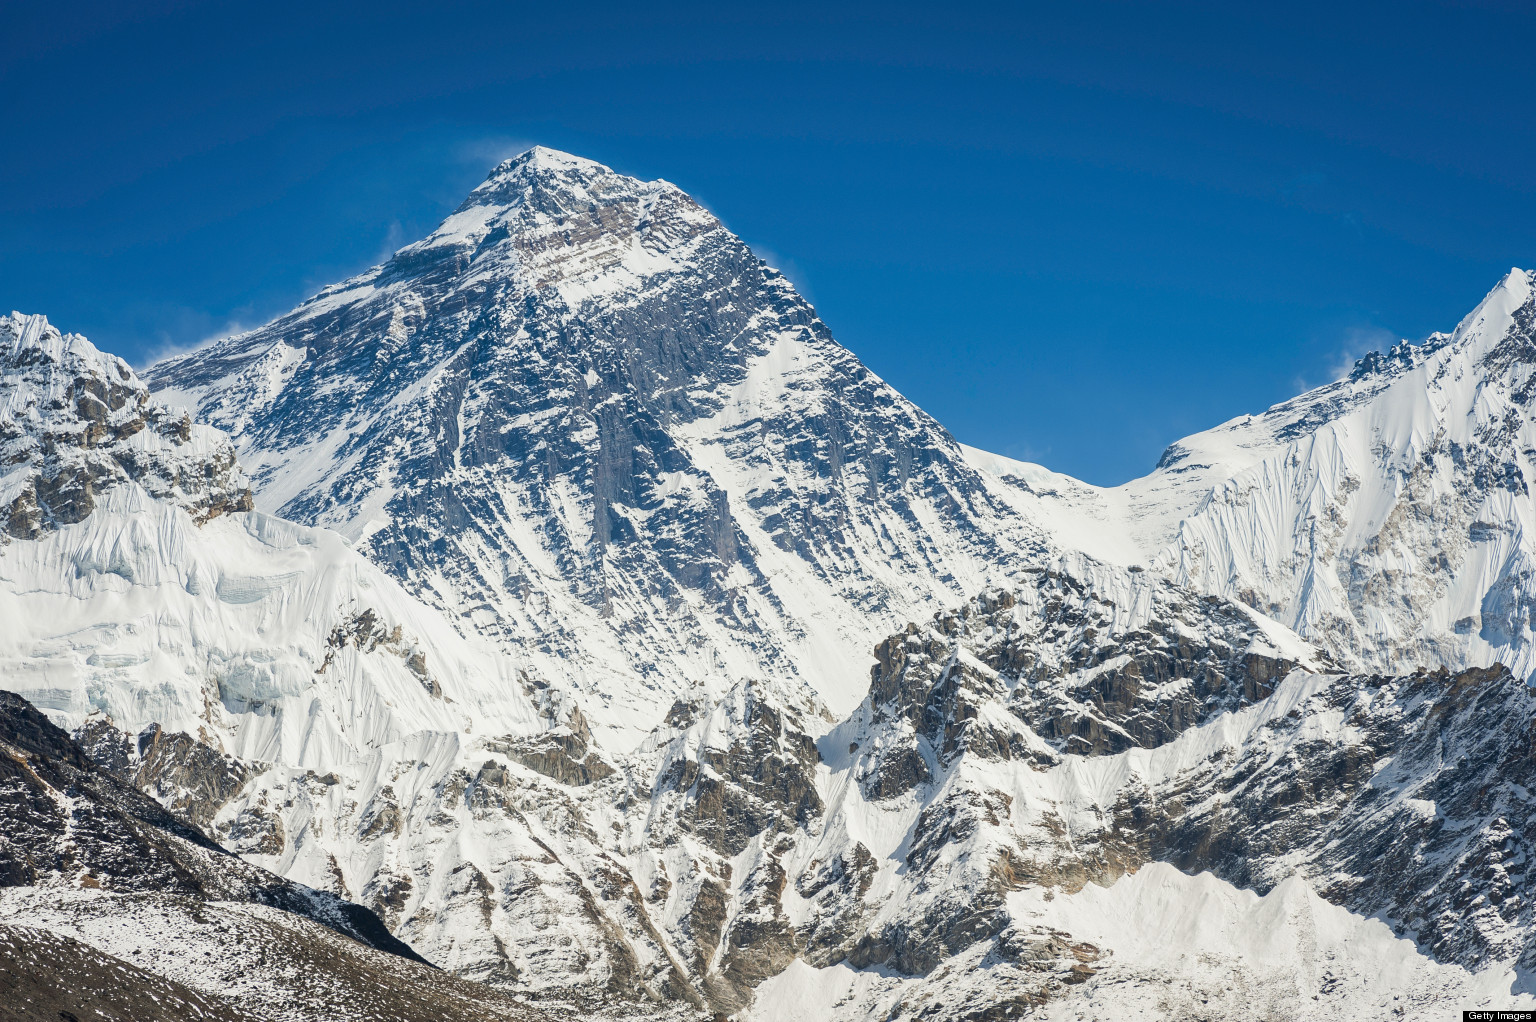 Fighting Climbers On Mt. Everest Reach Truce